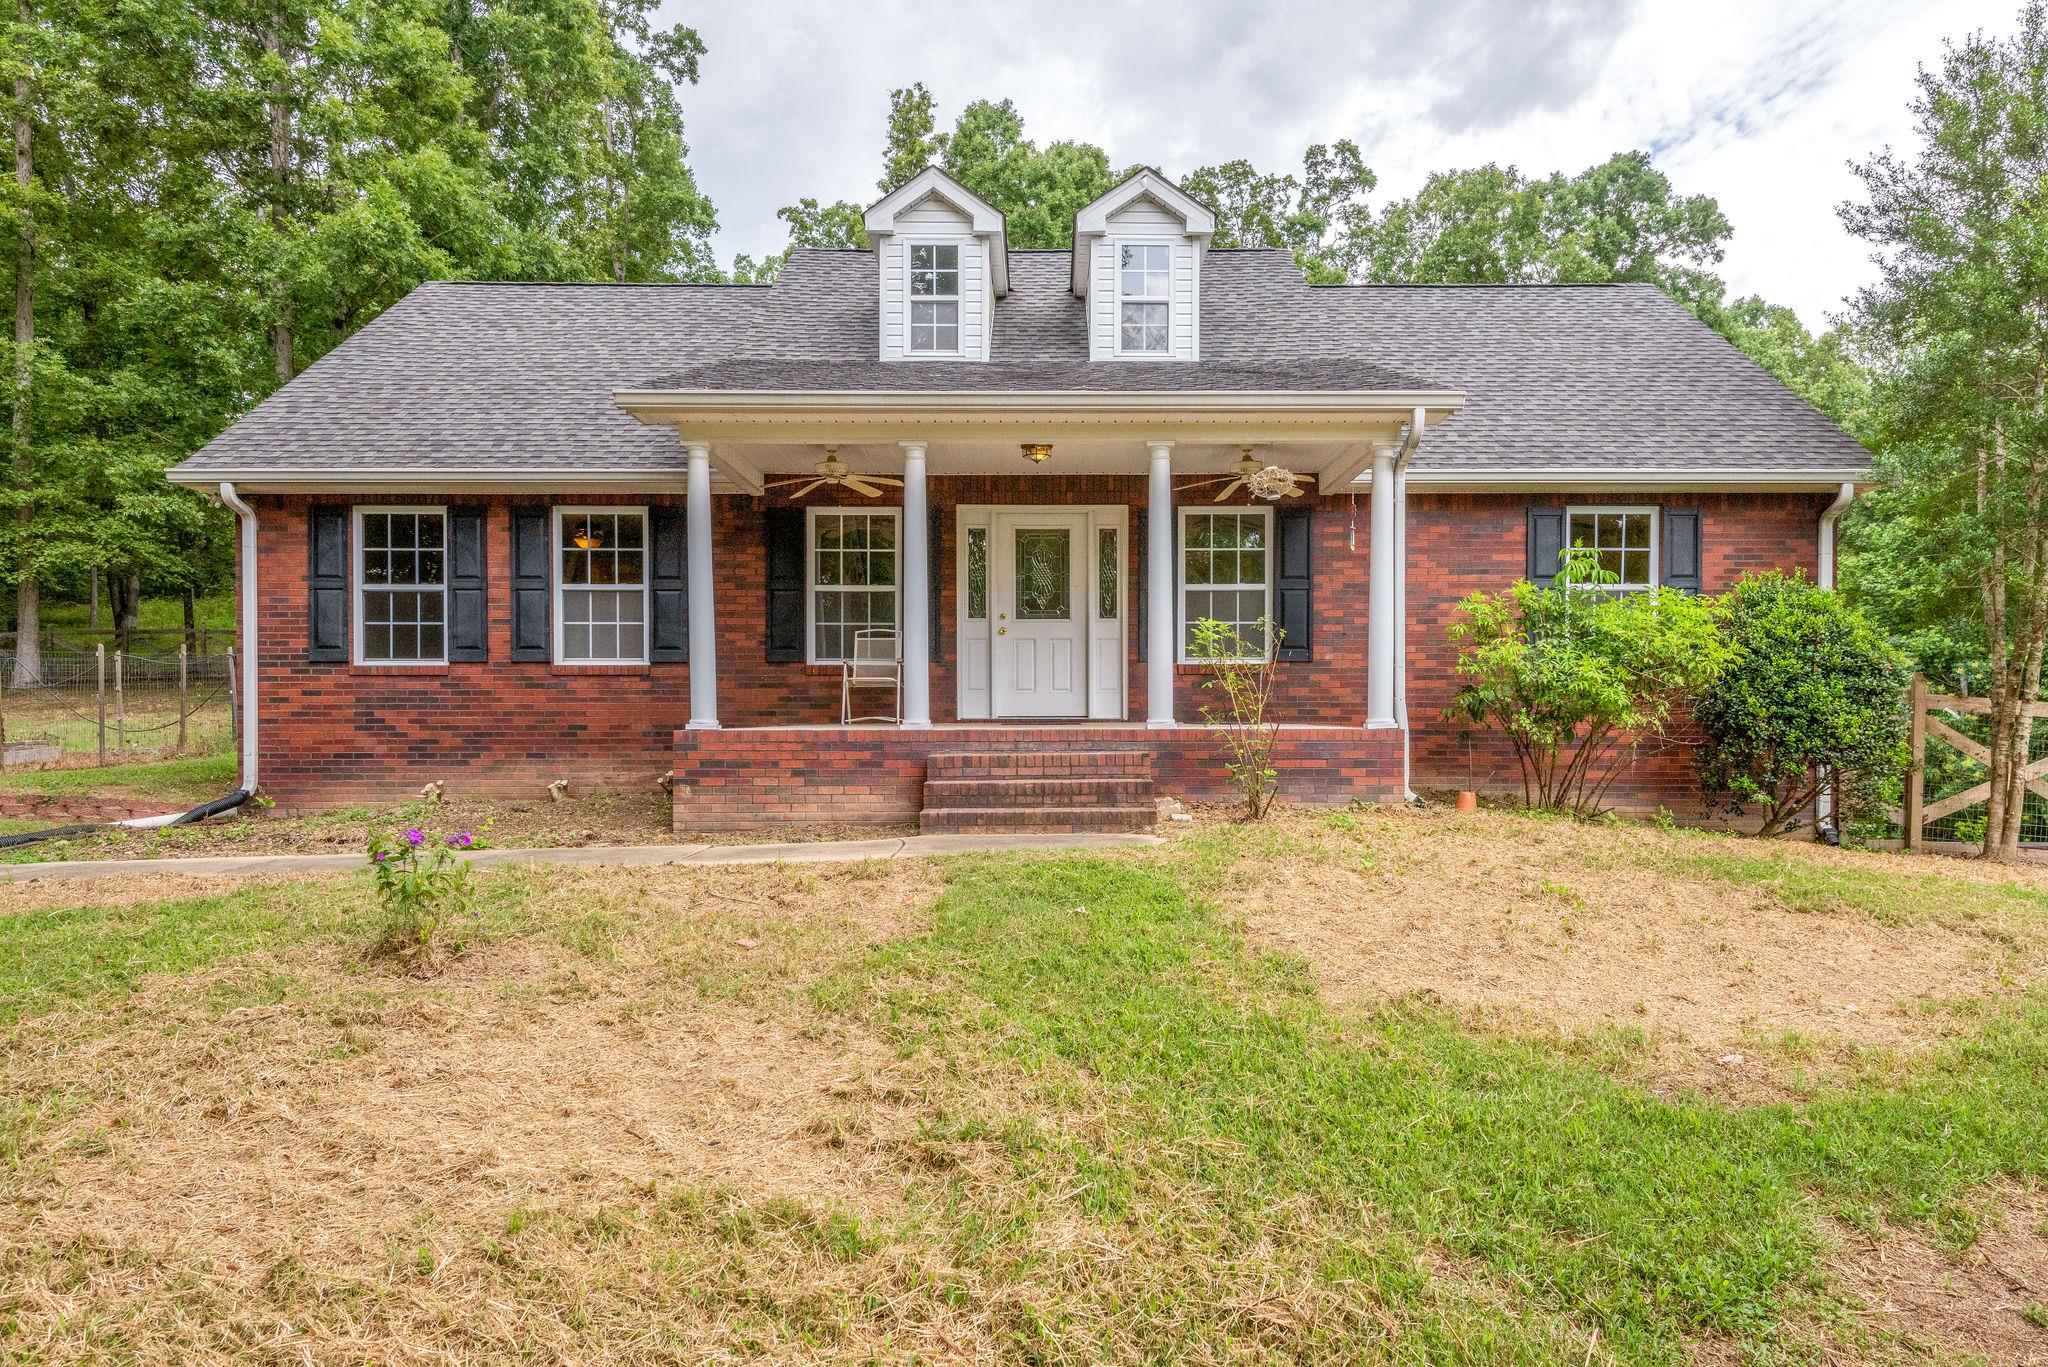 212 Hill Dr, White Bluff, TN 37187 - White Bluff, TN real estate listing